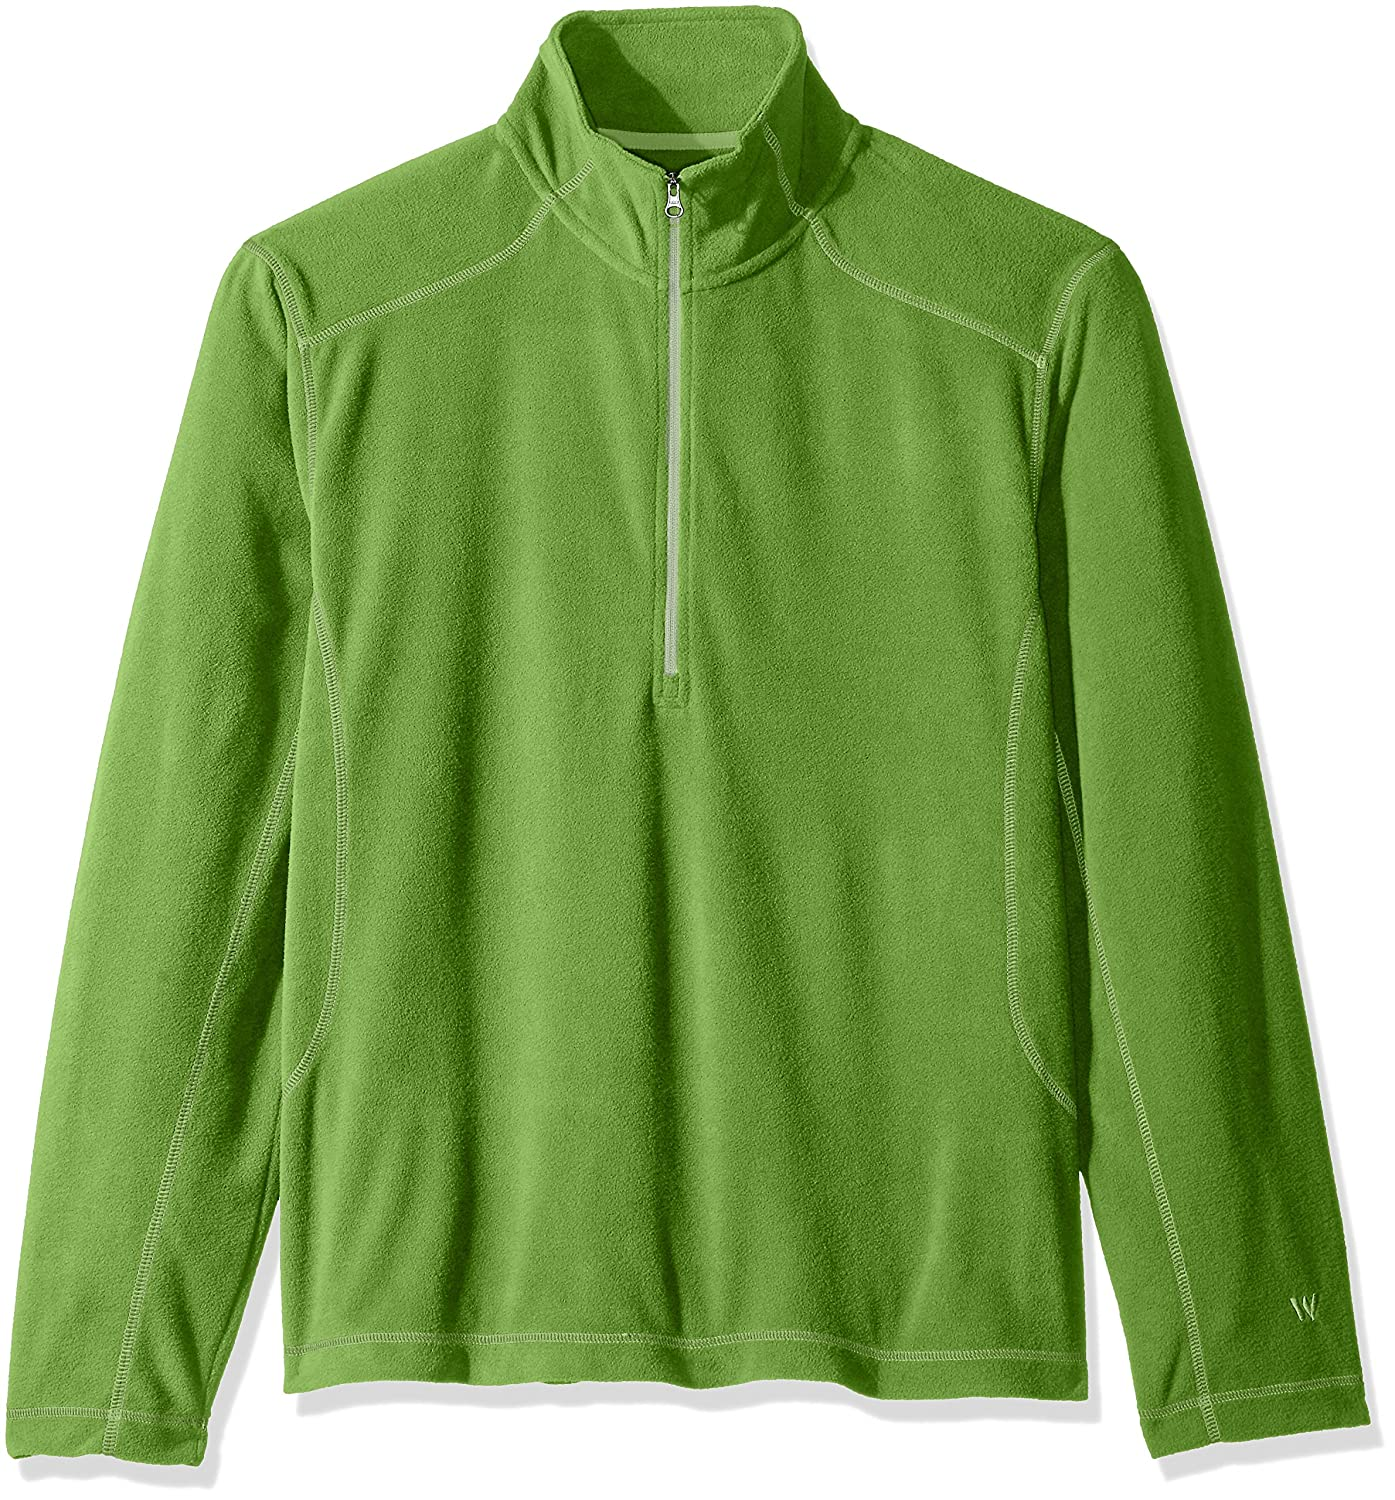 White Sierra Baz Az 1/4 Zip Fleece Shirt - Best Backpacking Gear